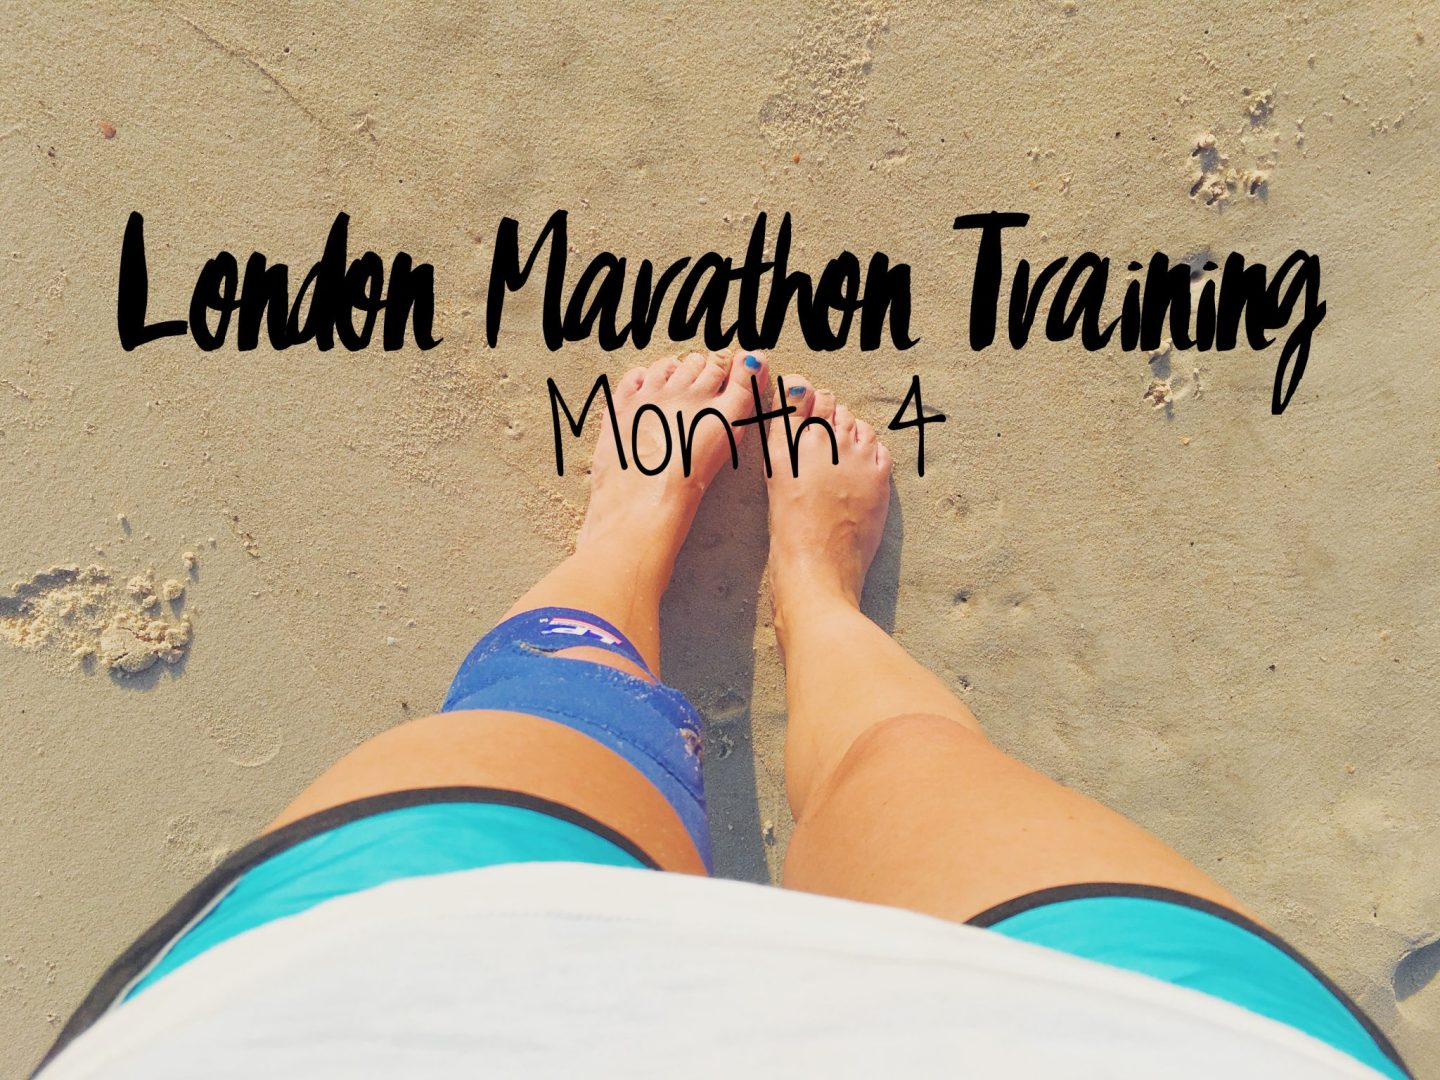 London Marathon Training month 4